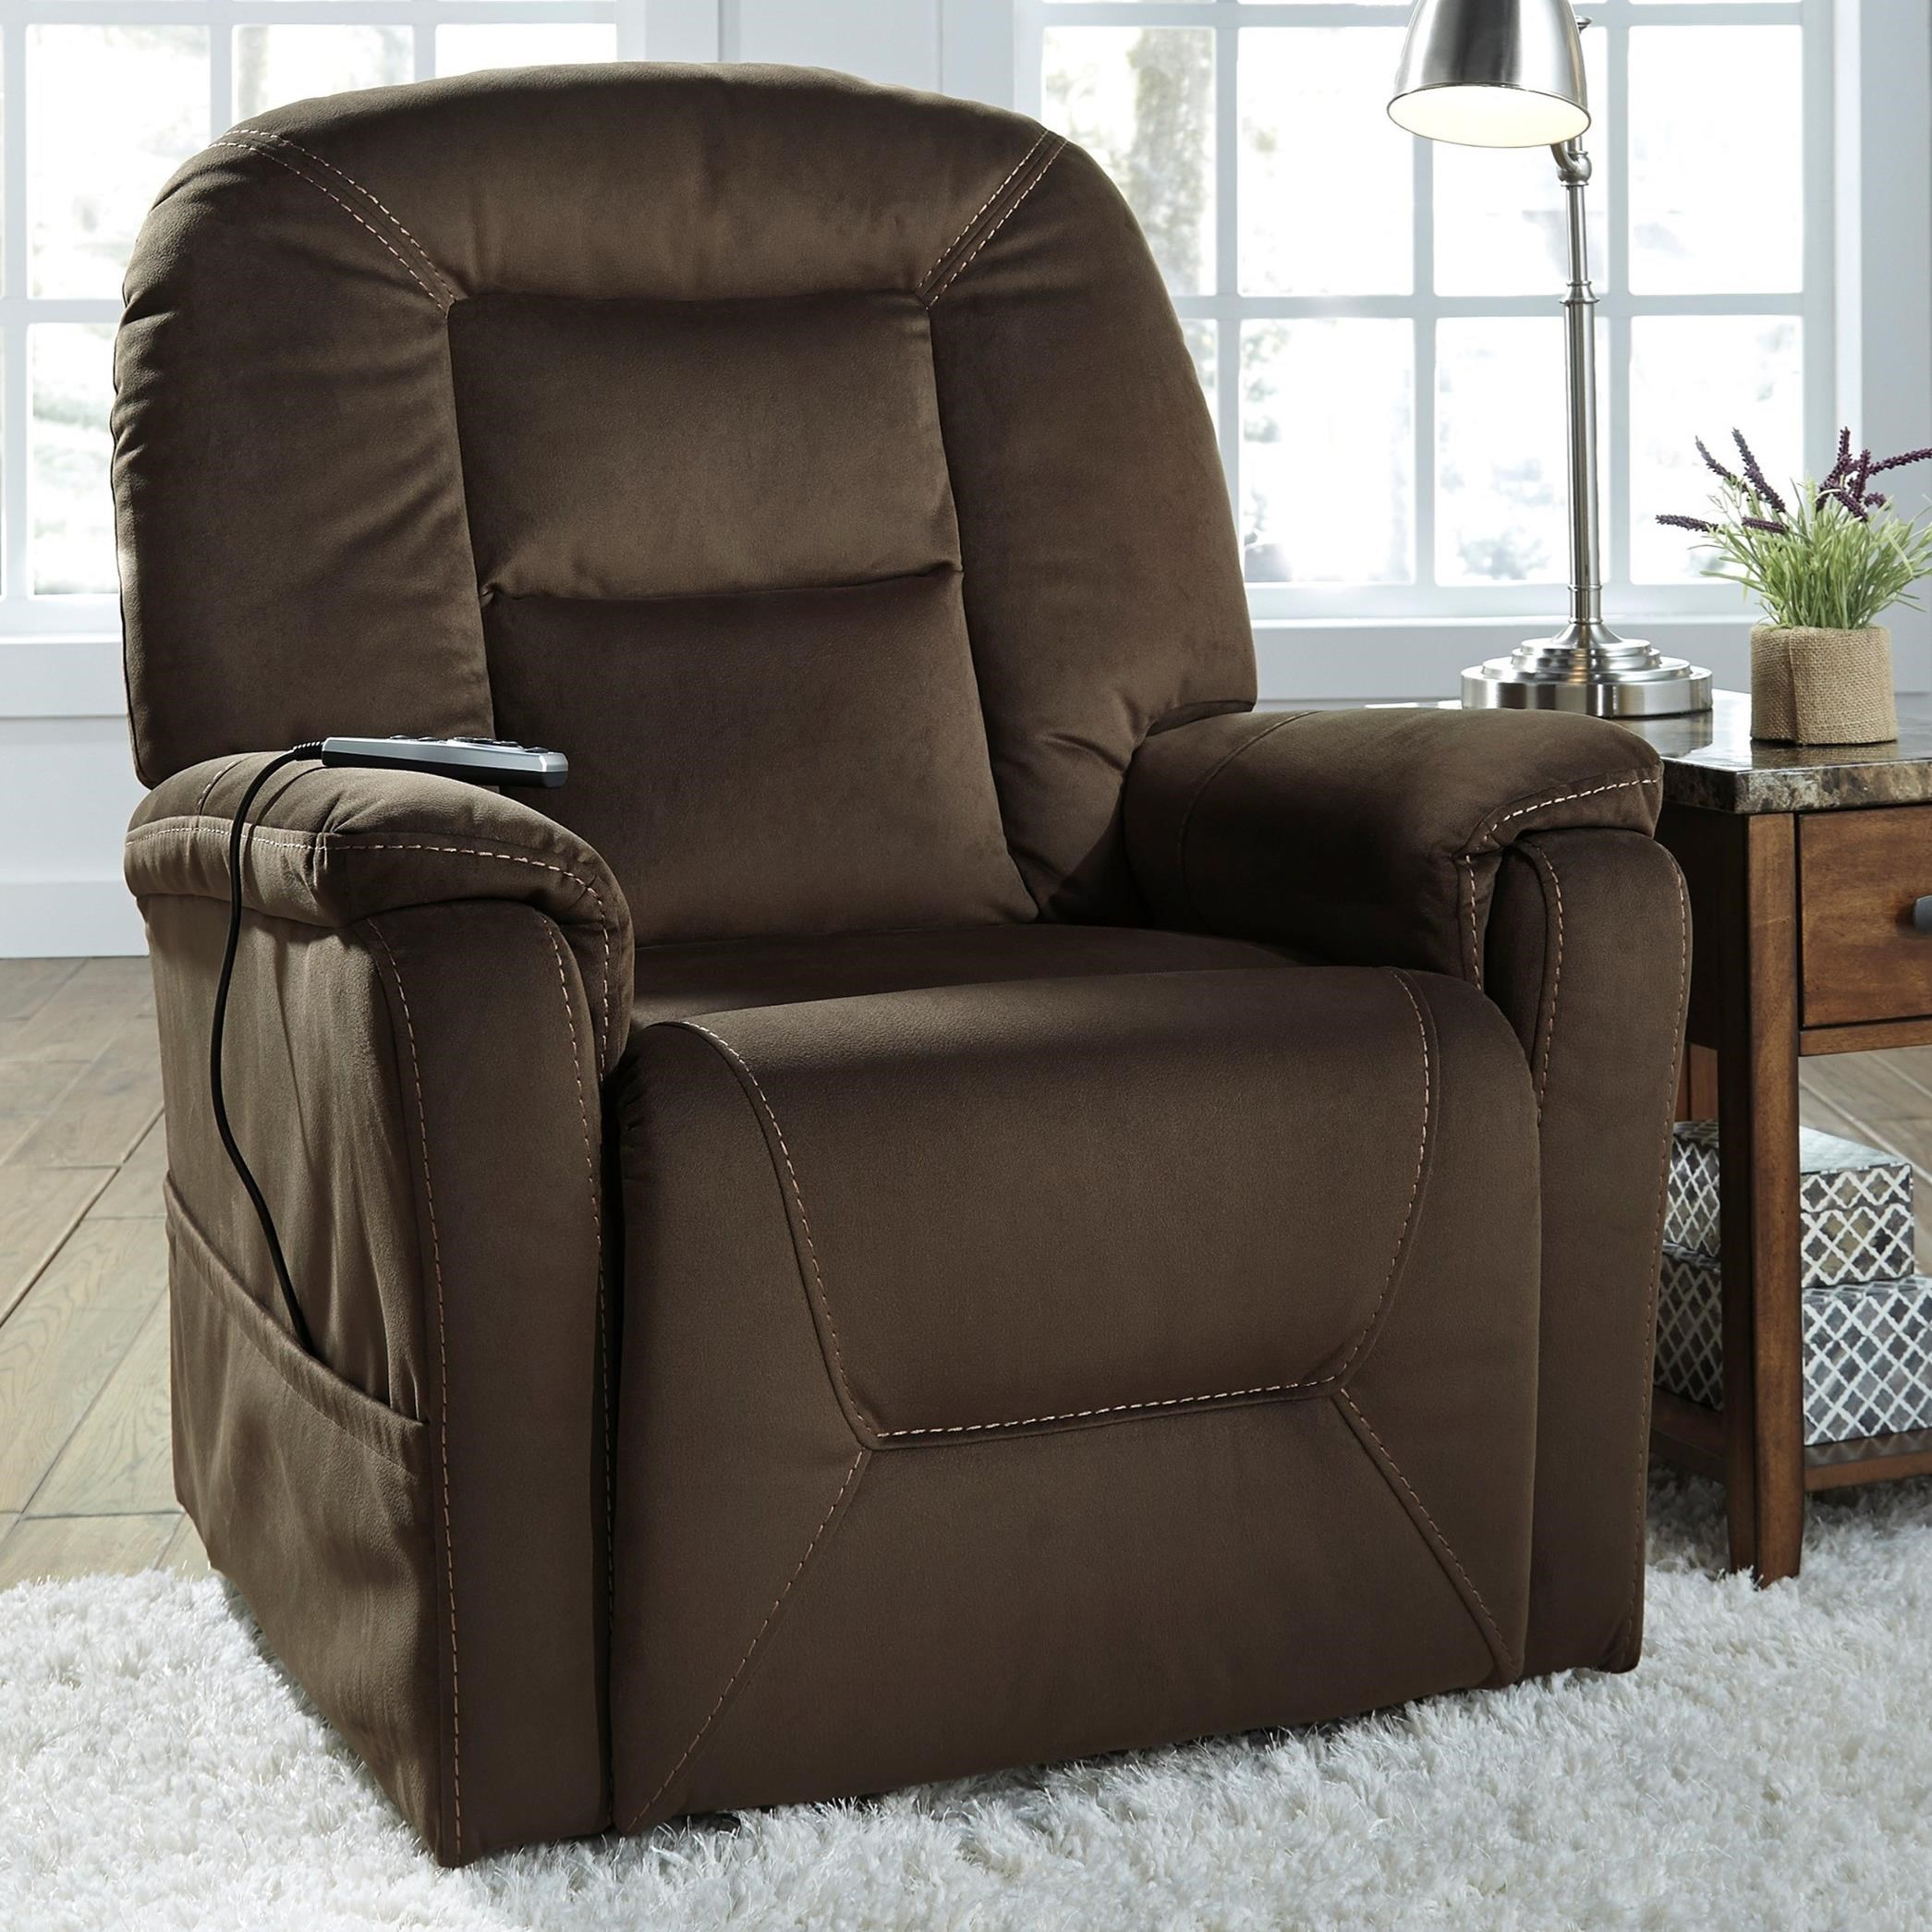 Ashley Furniture Melbourne Fl: Ashley Signature Design Samir 2080112 Power Lift Recliner